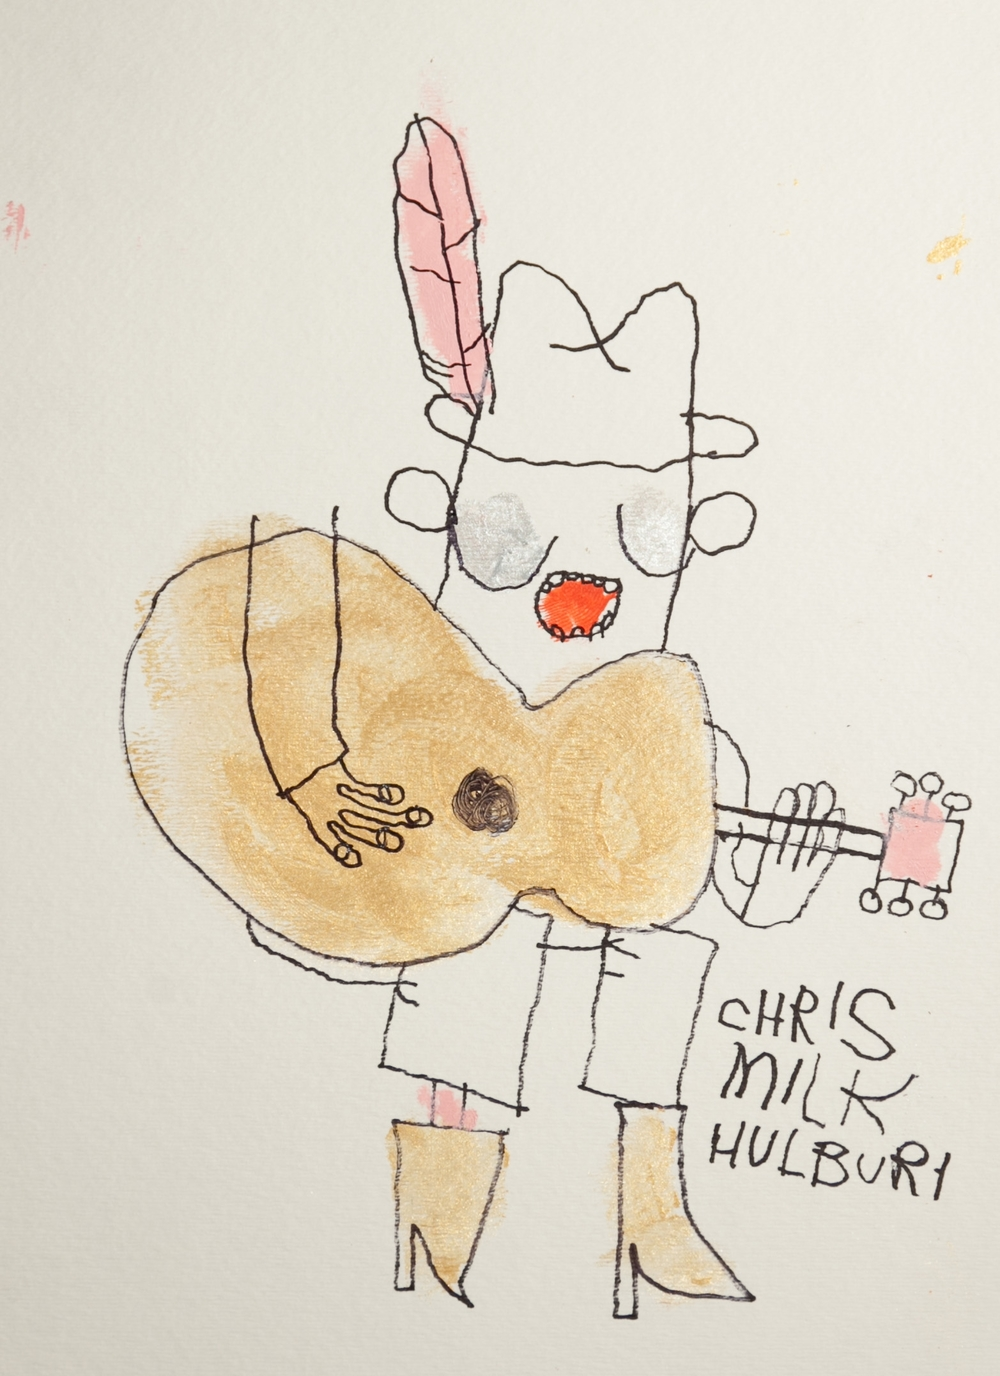 milk_chris_233.jpg